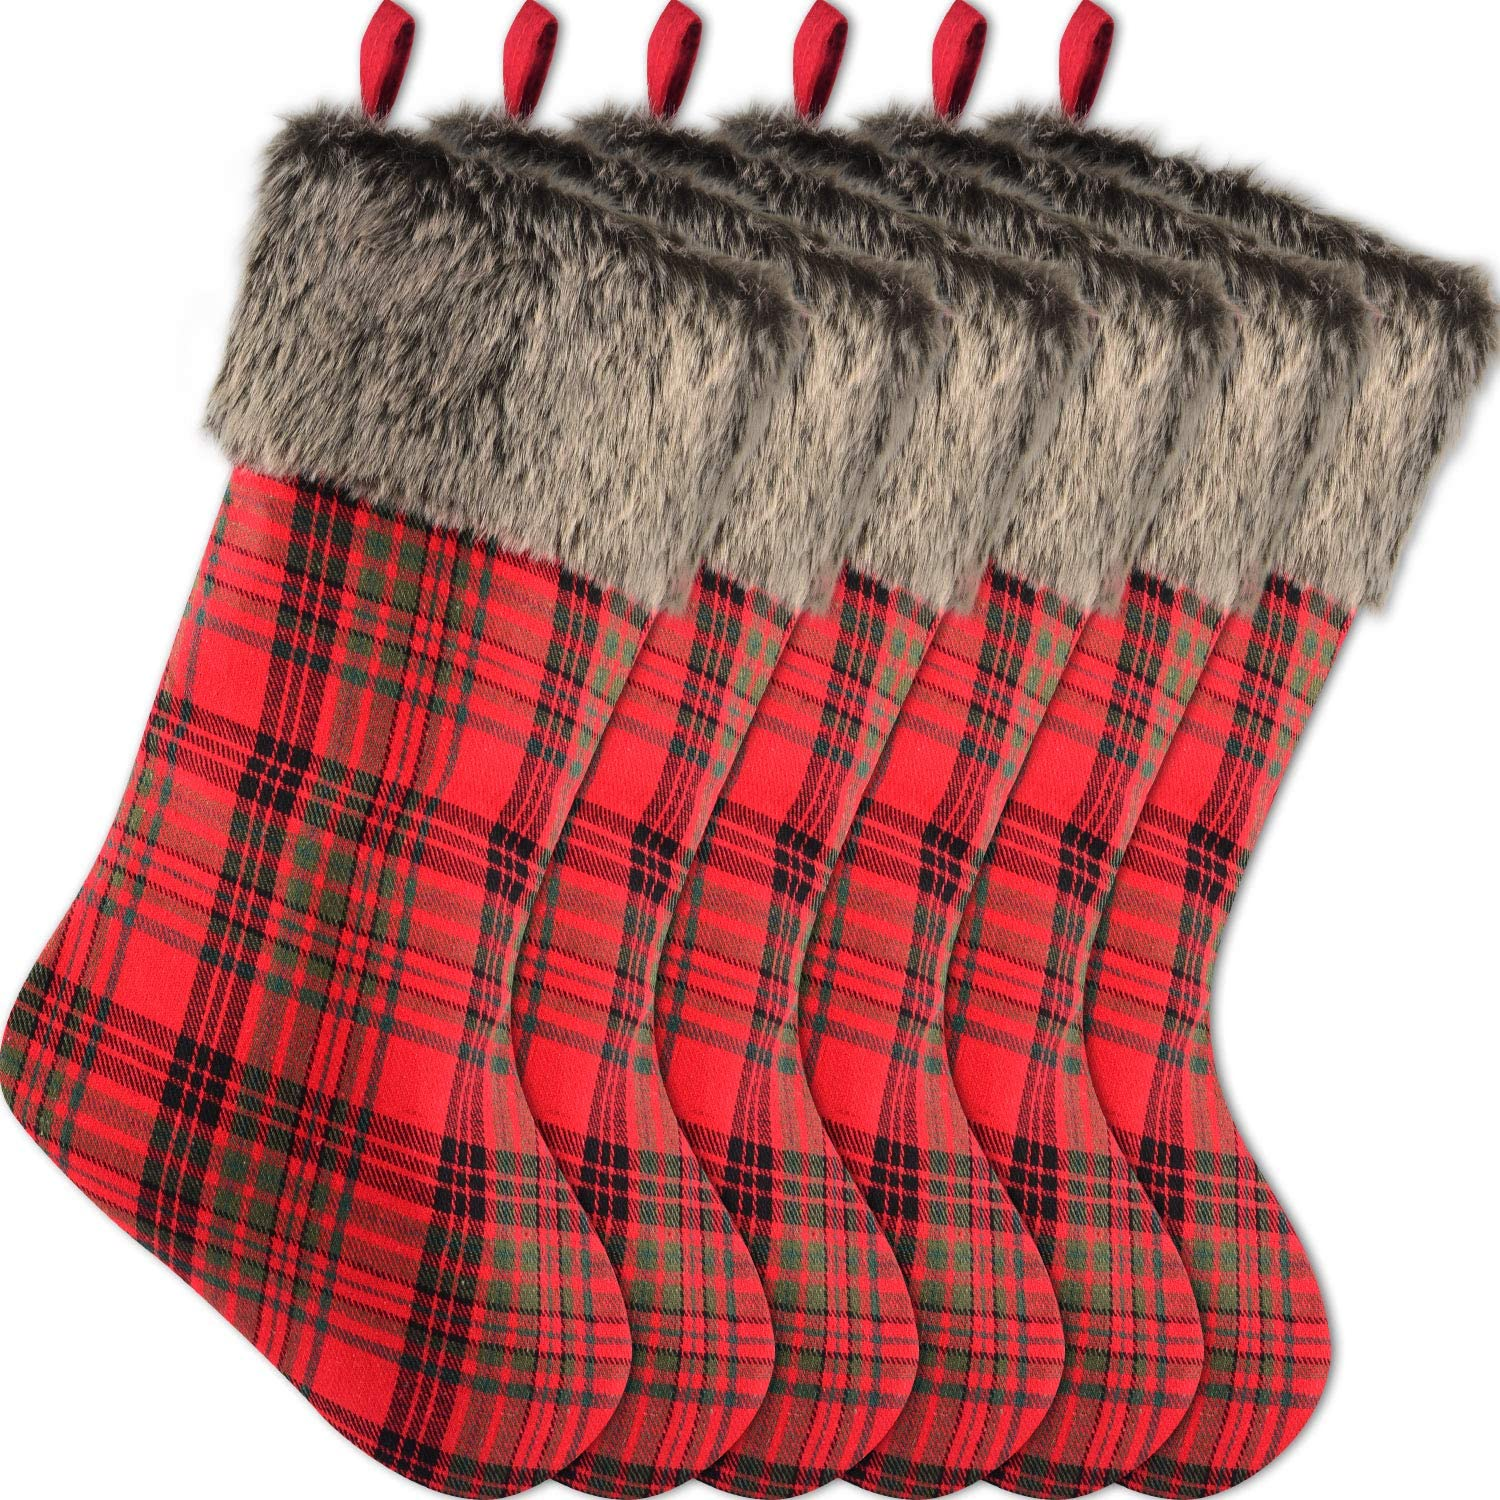 Sunshane 35% OFF 6 Pieces Limited time sale Christmas Stockings Firepl 18 Xmas Inch Mantel